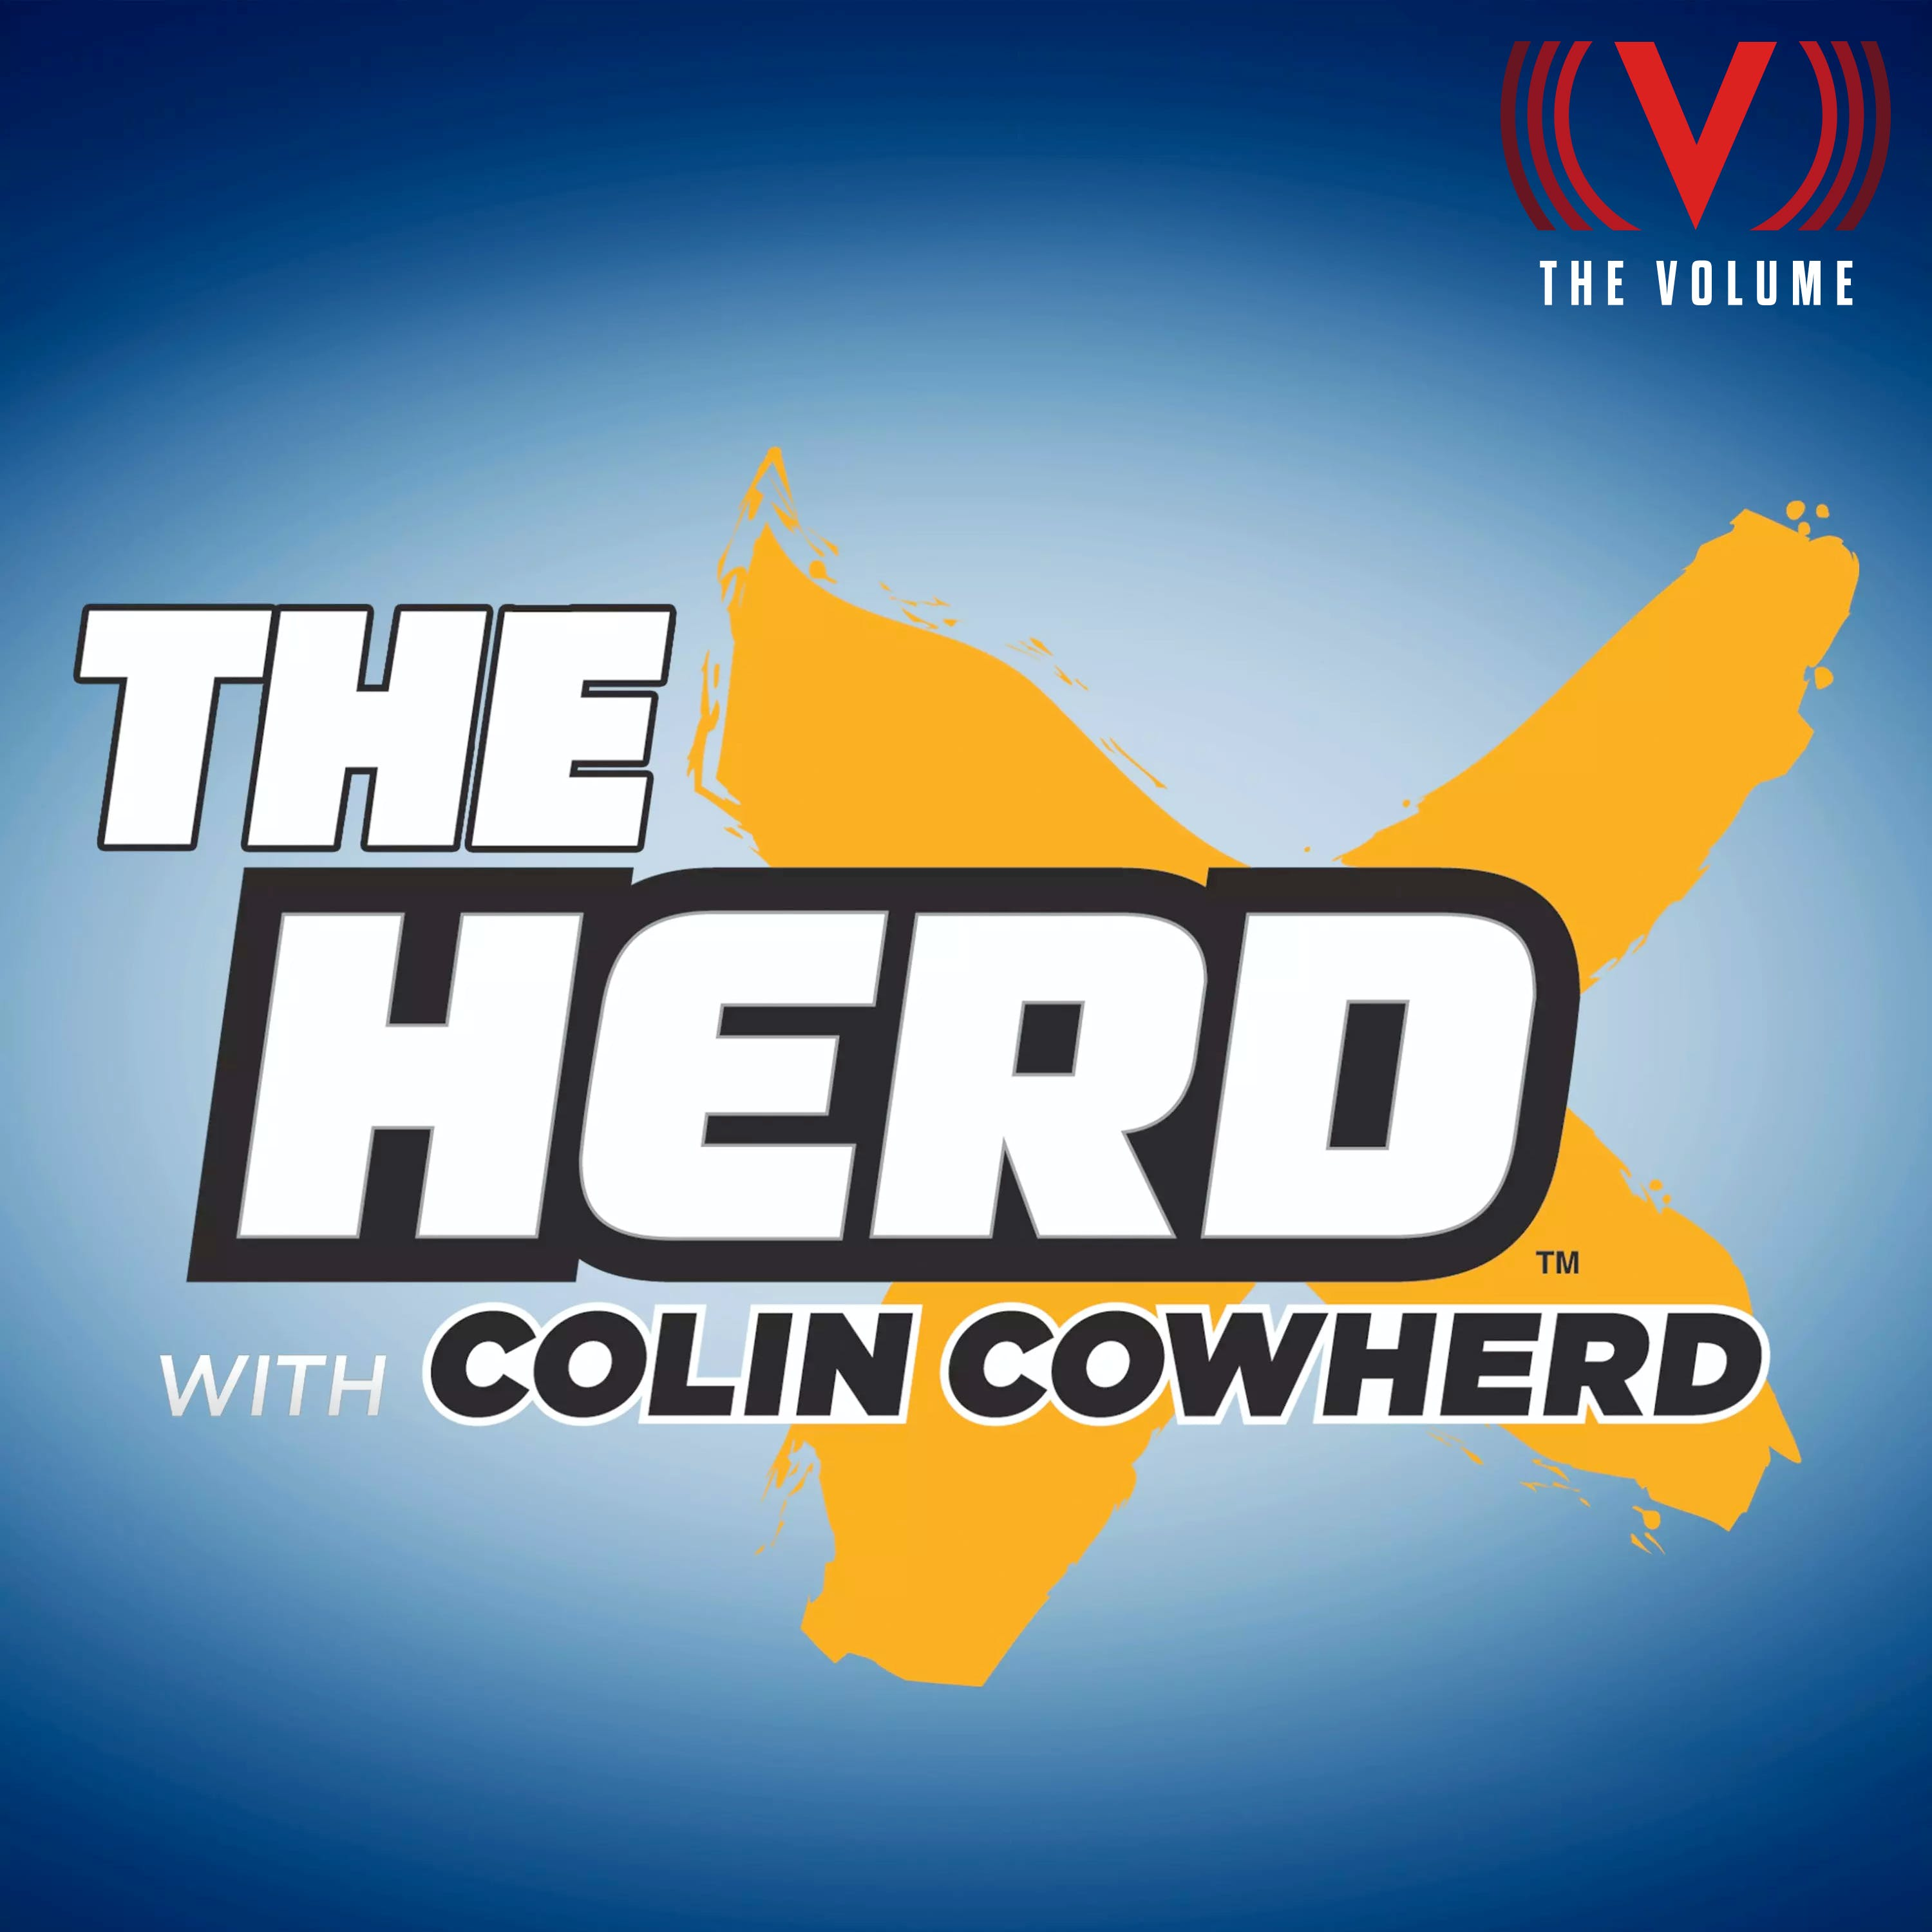 The Herd with Colin Cowherd podcast show image